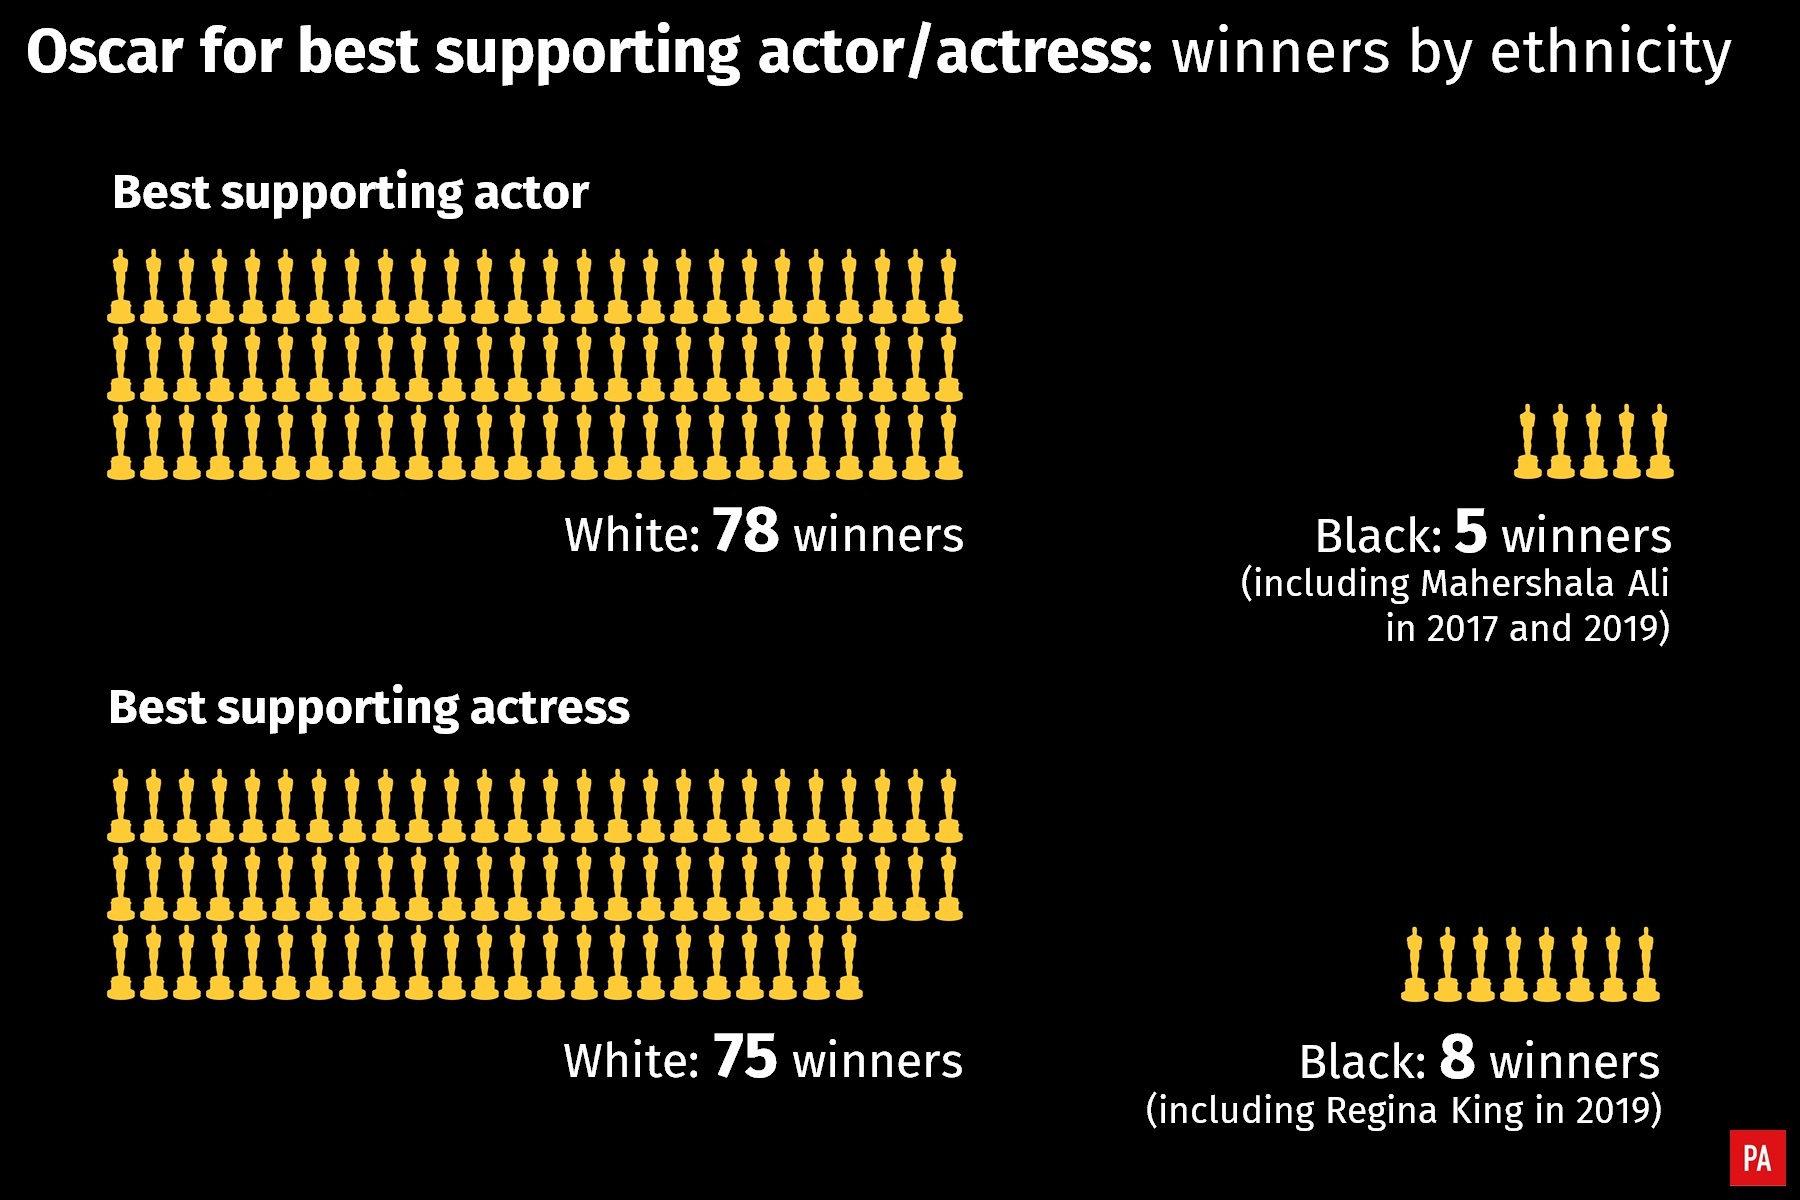 Oscar for best supporting actor and actress: winners by ethnicity